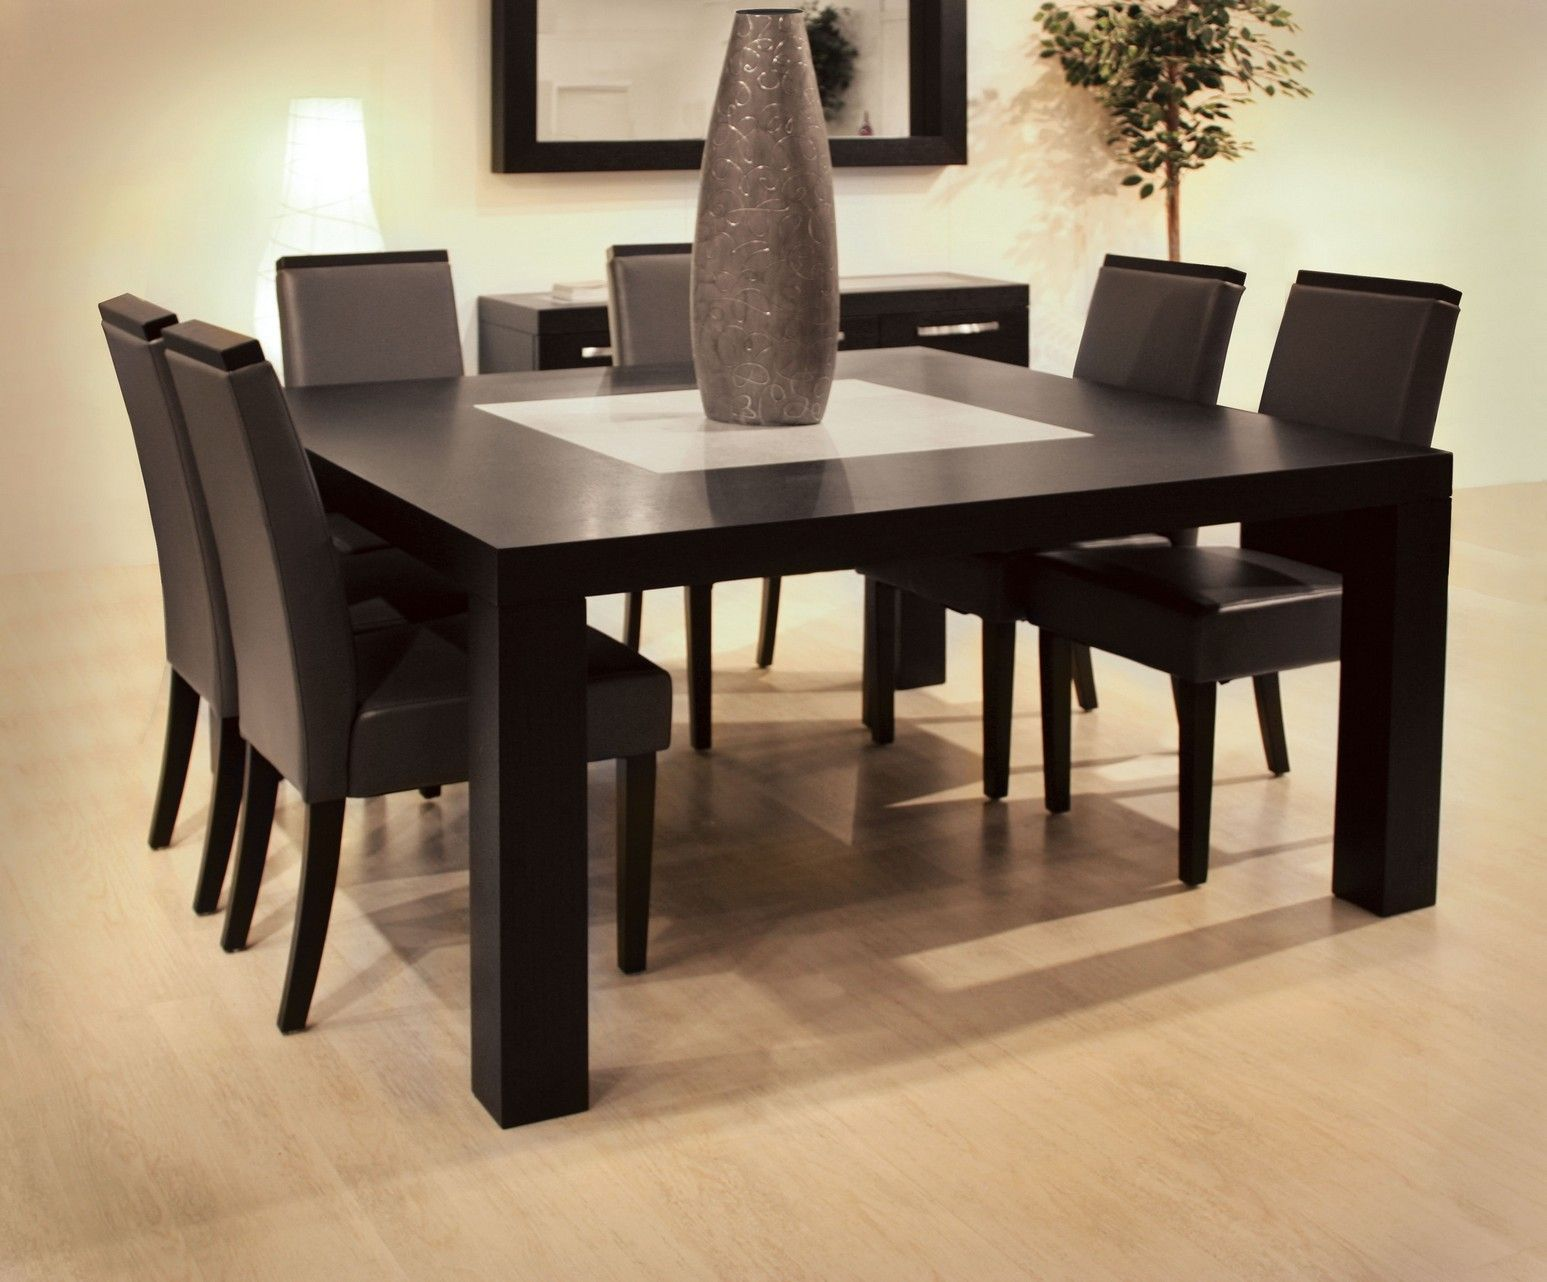 Dining Table Ideas For Small Kitchen Square Dining Table Counter Height Table Marble Top